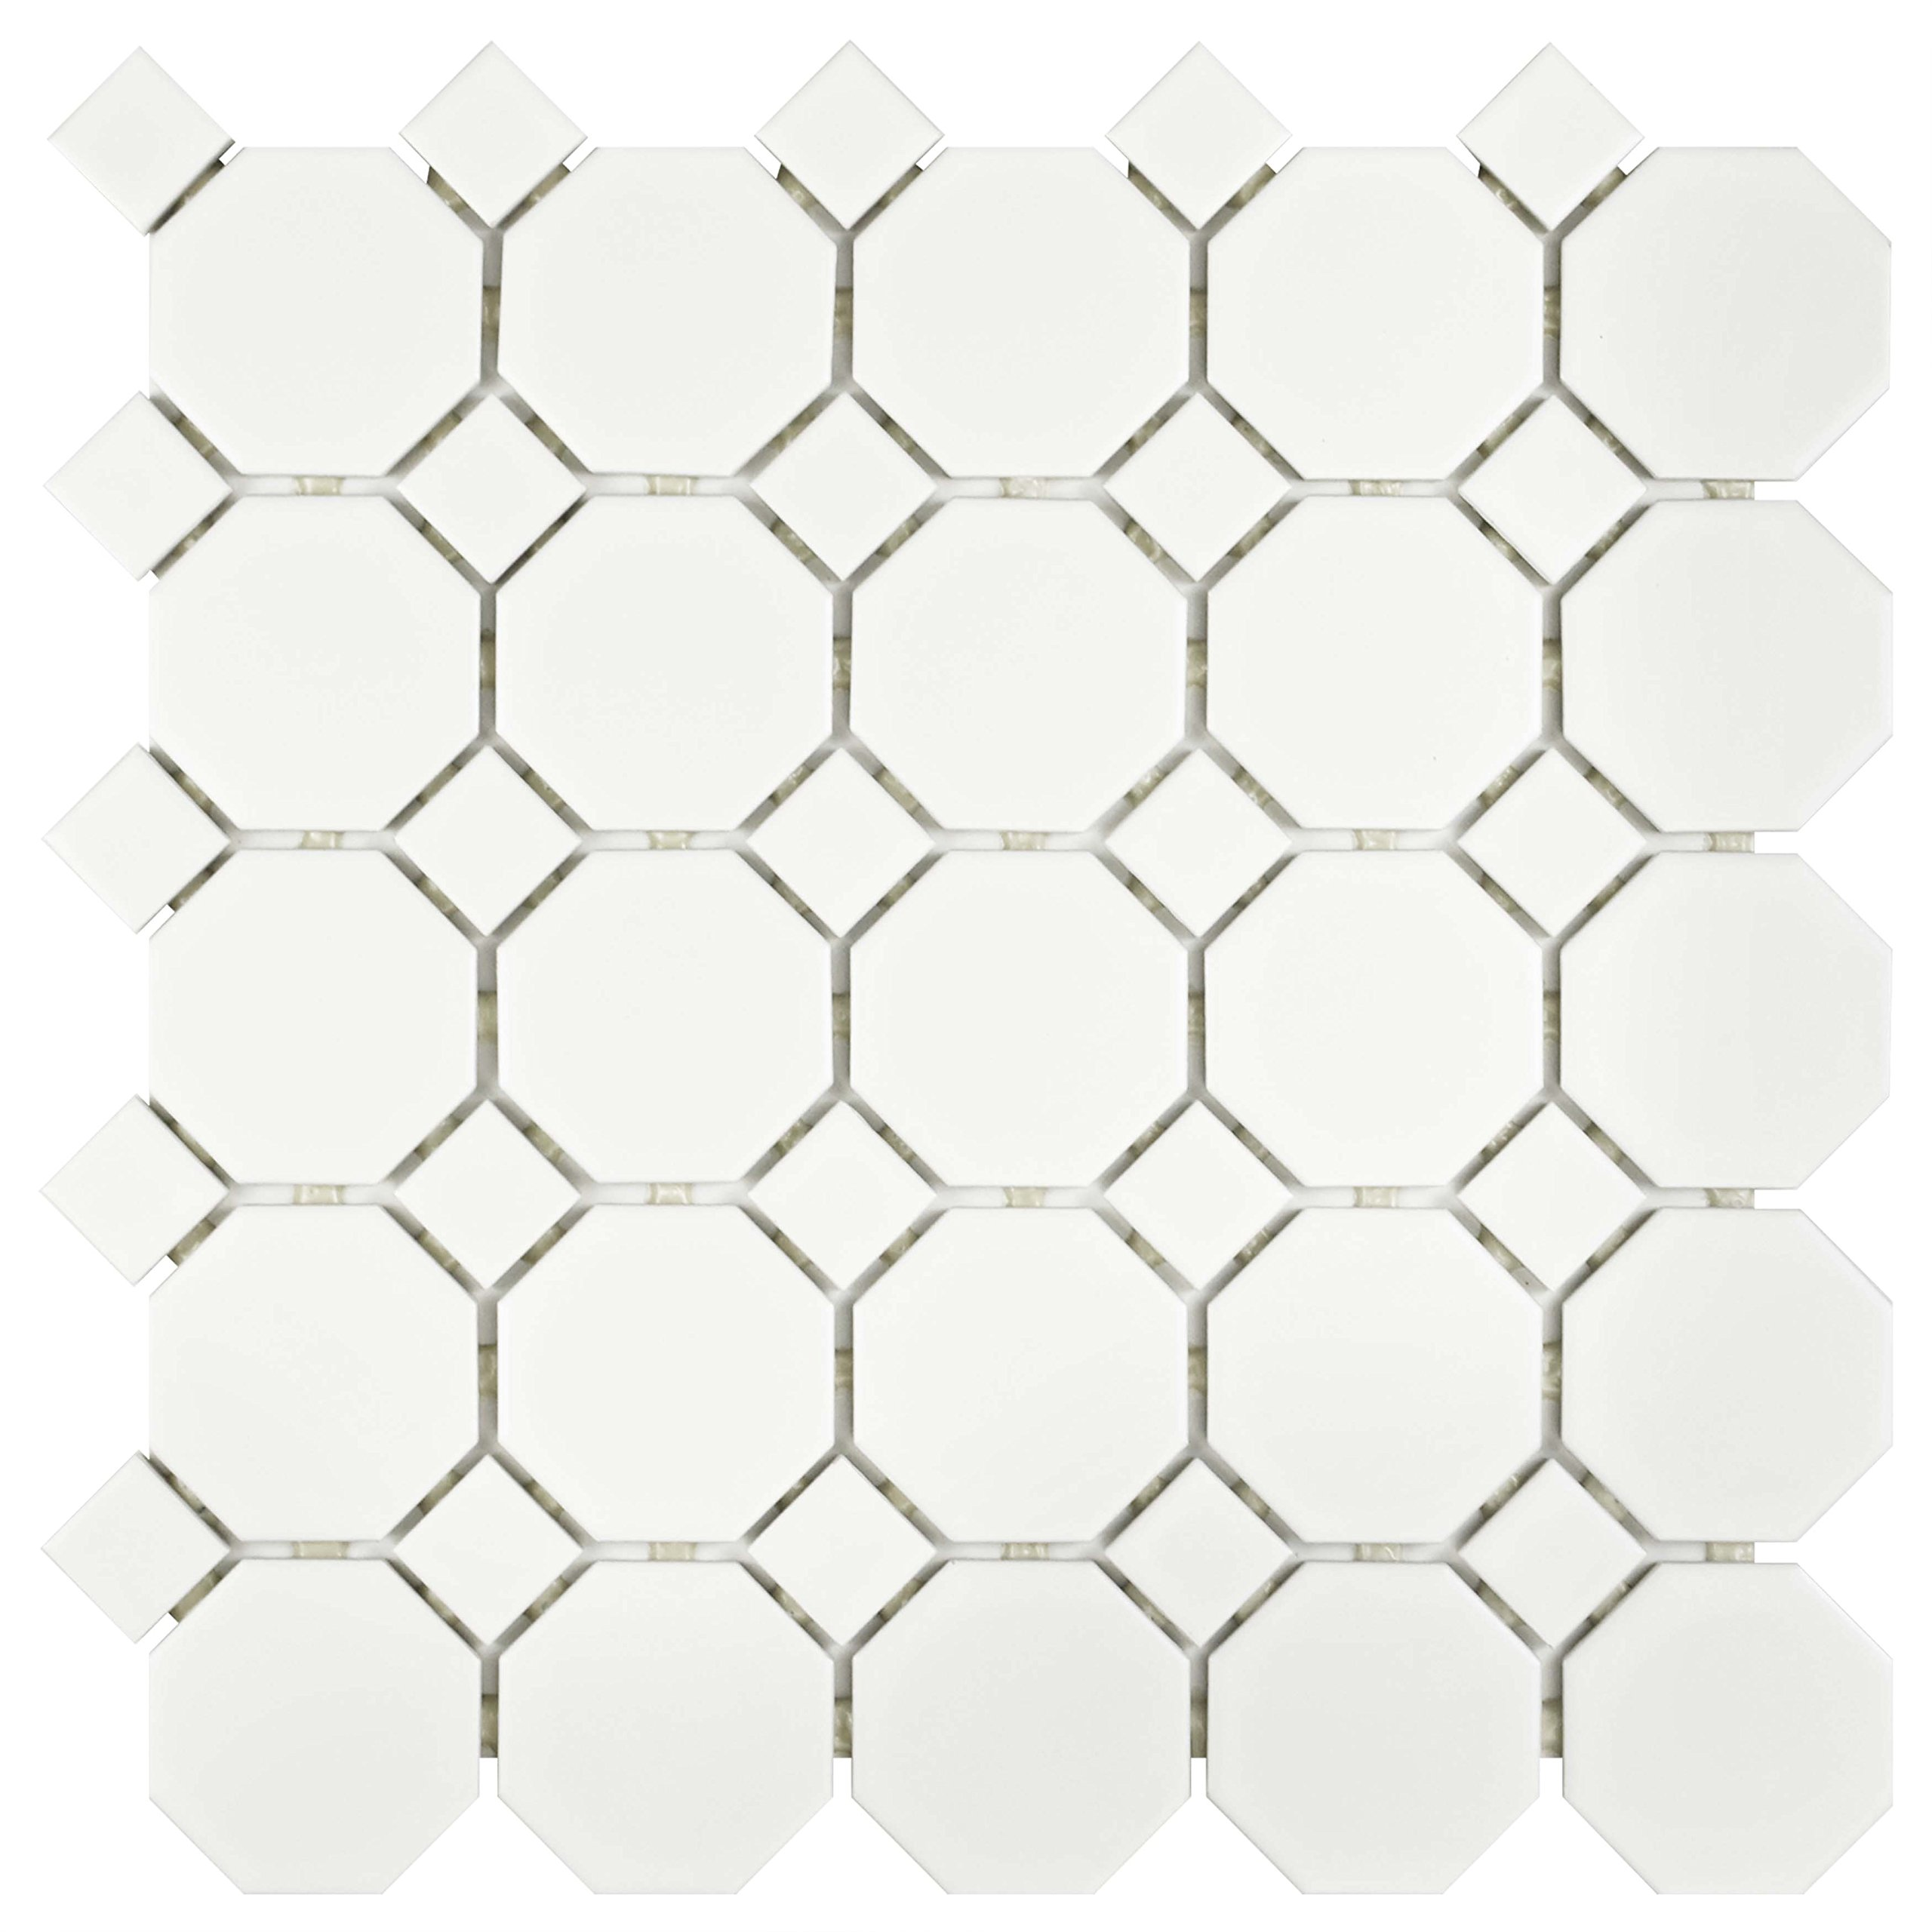 SomerTile FXLMOWWT Retro Octagon Porcelain Floor and Wall Tile, 11.5'' x 11.5'', Matte White